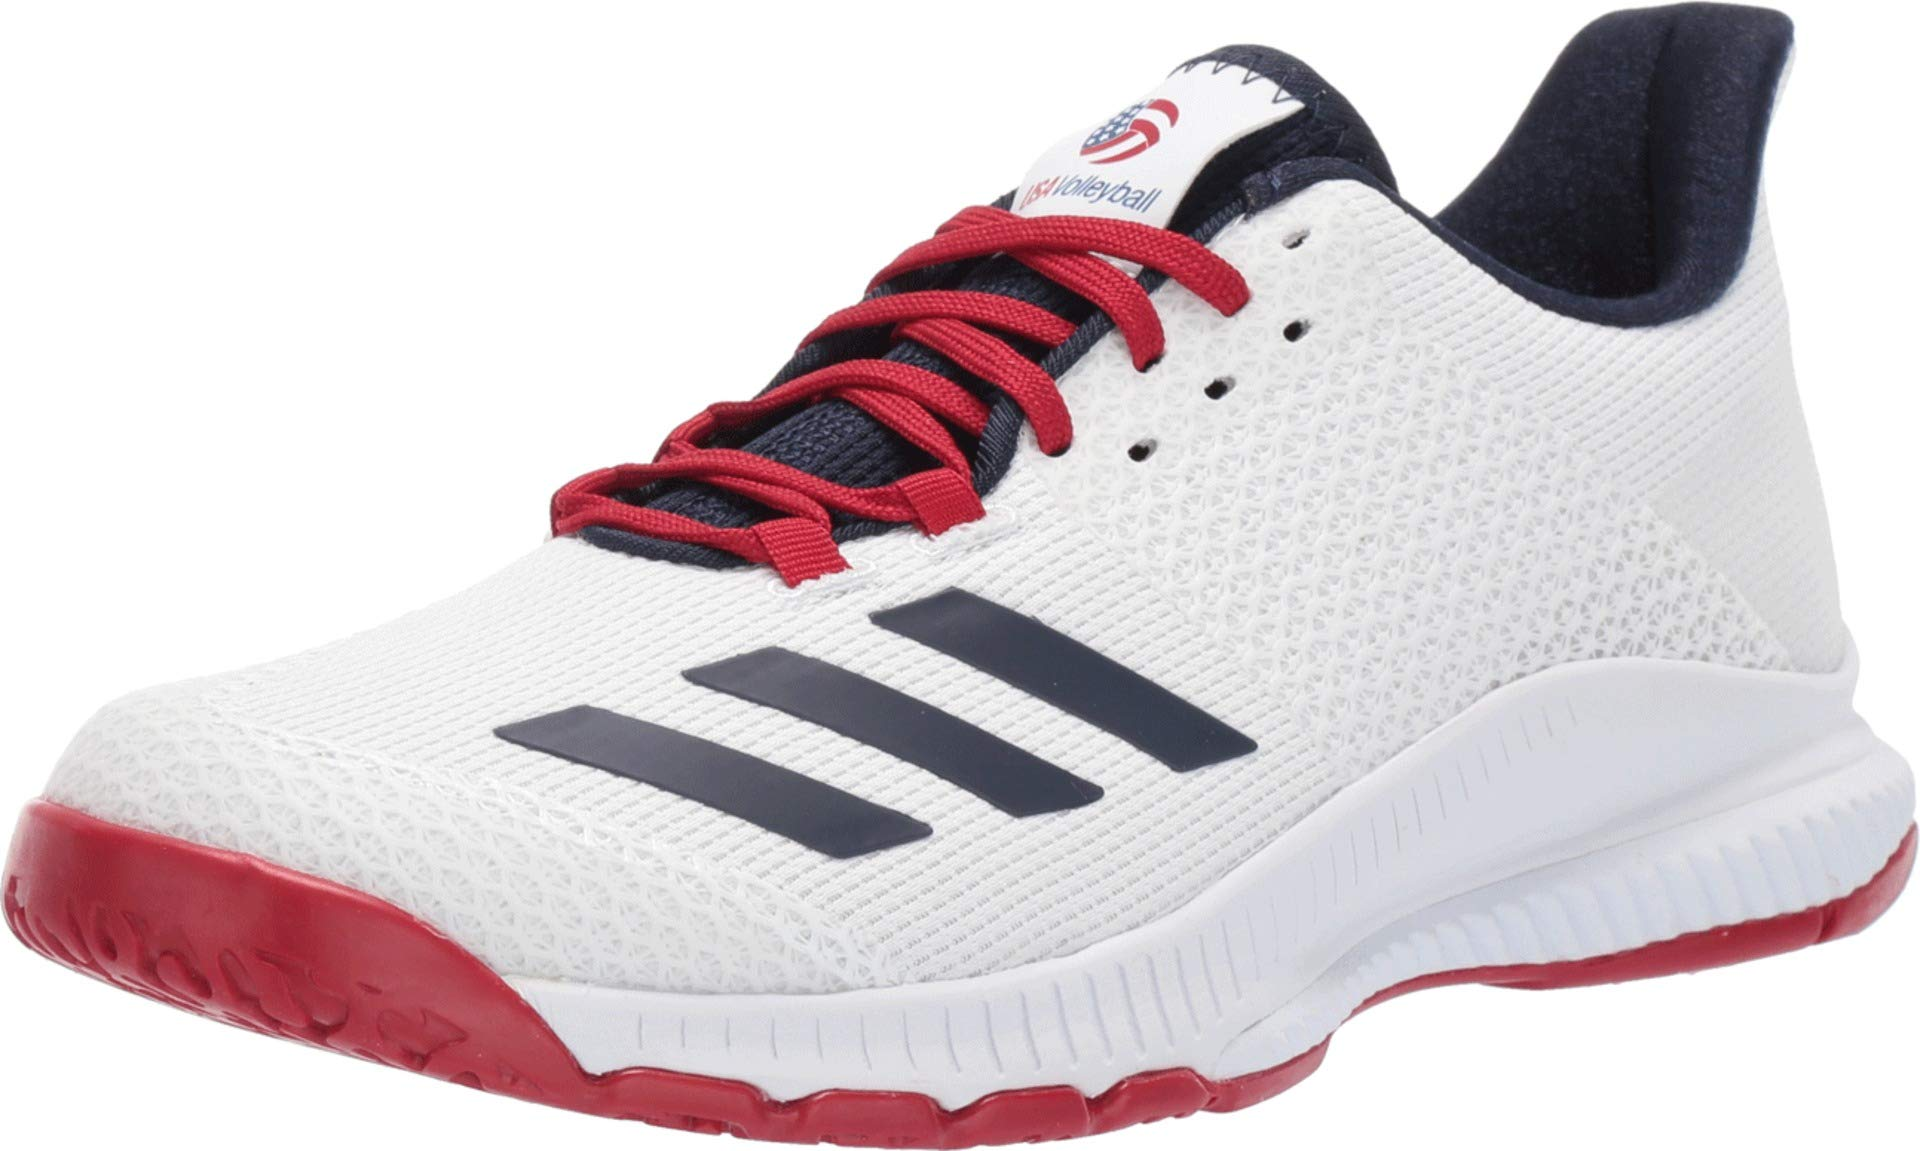 adidas Women's Crazyflight Bounce 3 Volleyball Shoe, White/Collegiate Navy/Power Red, 5 M US